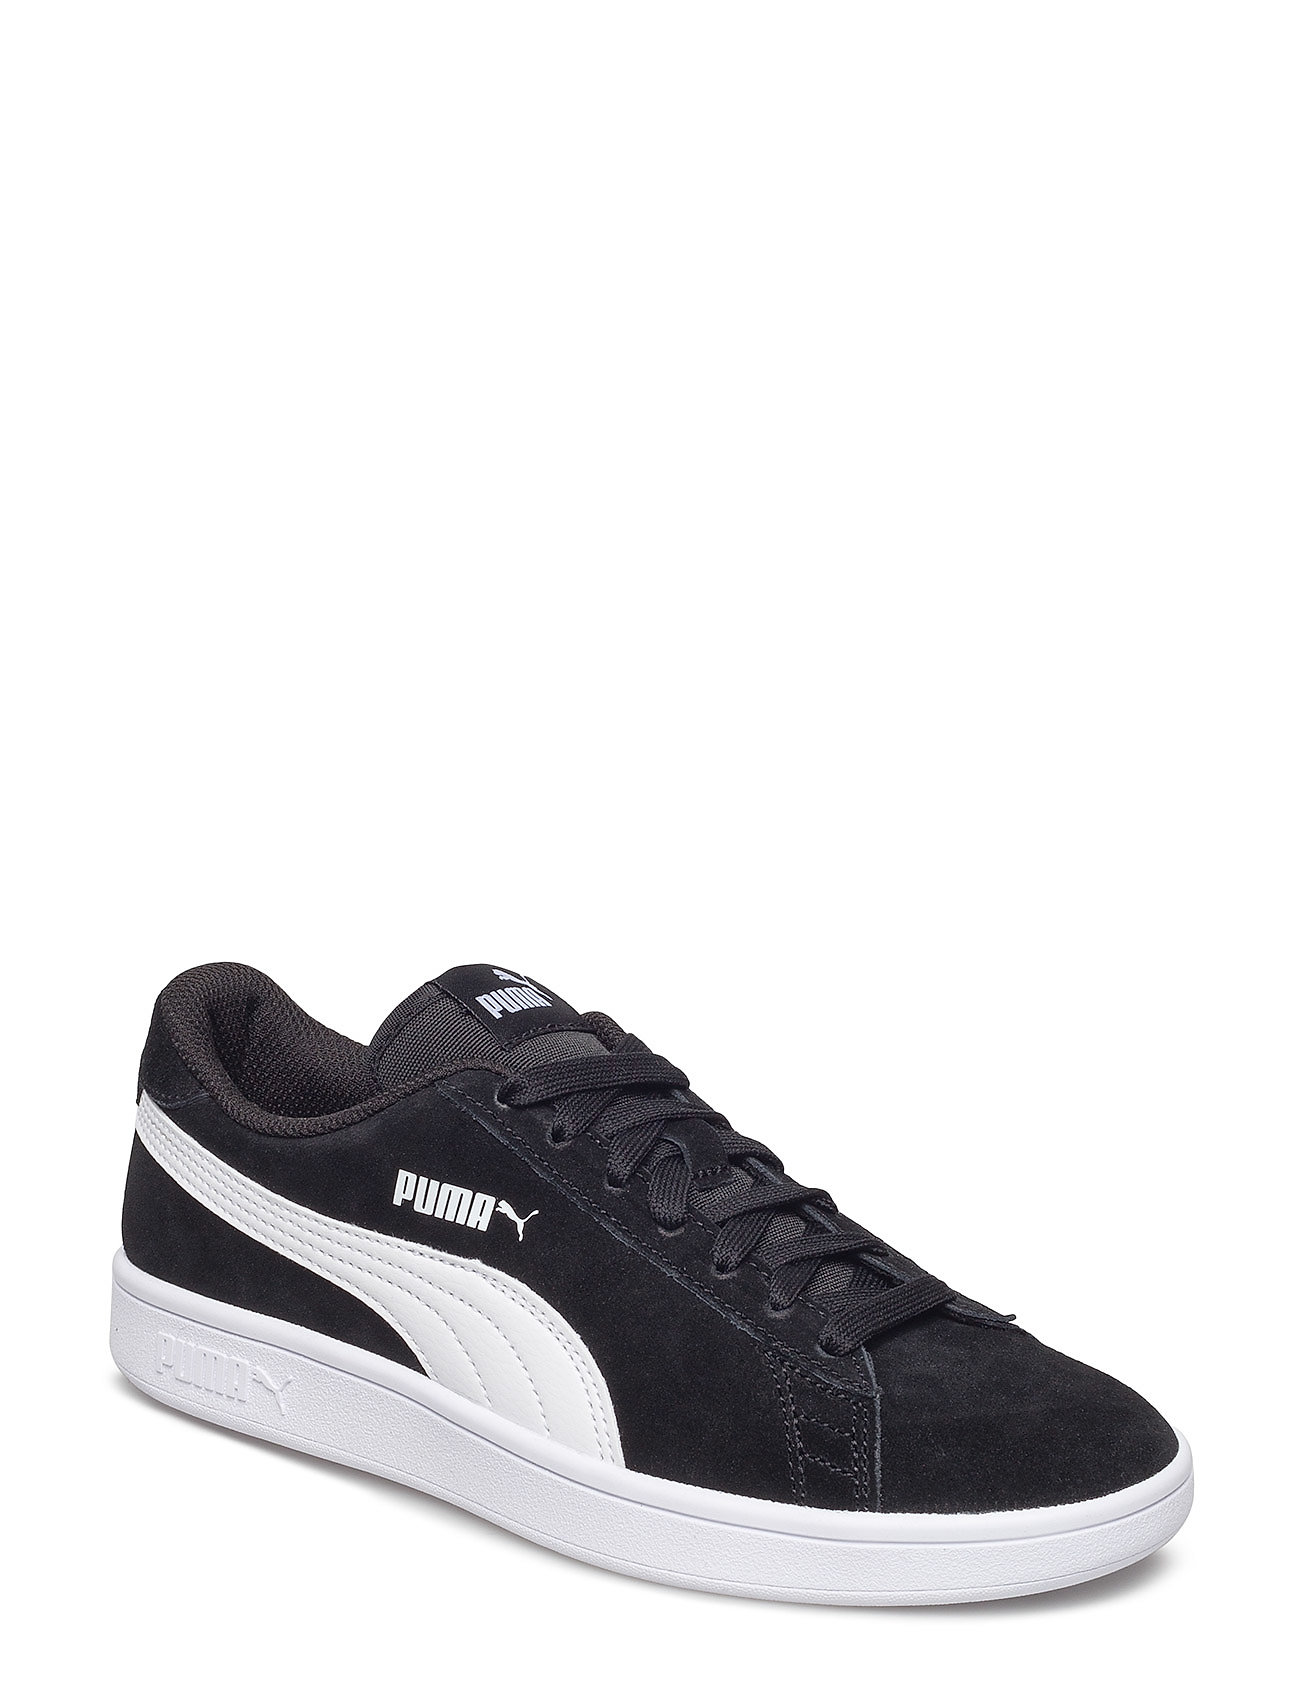 PUMA Puma Smash v2 SD Jr - PUMA BLACK-PUMA WHITE